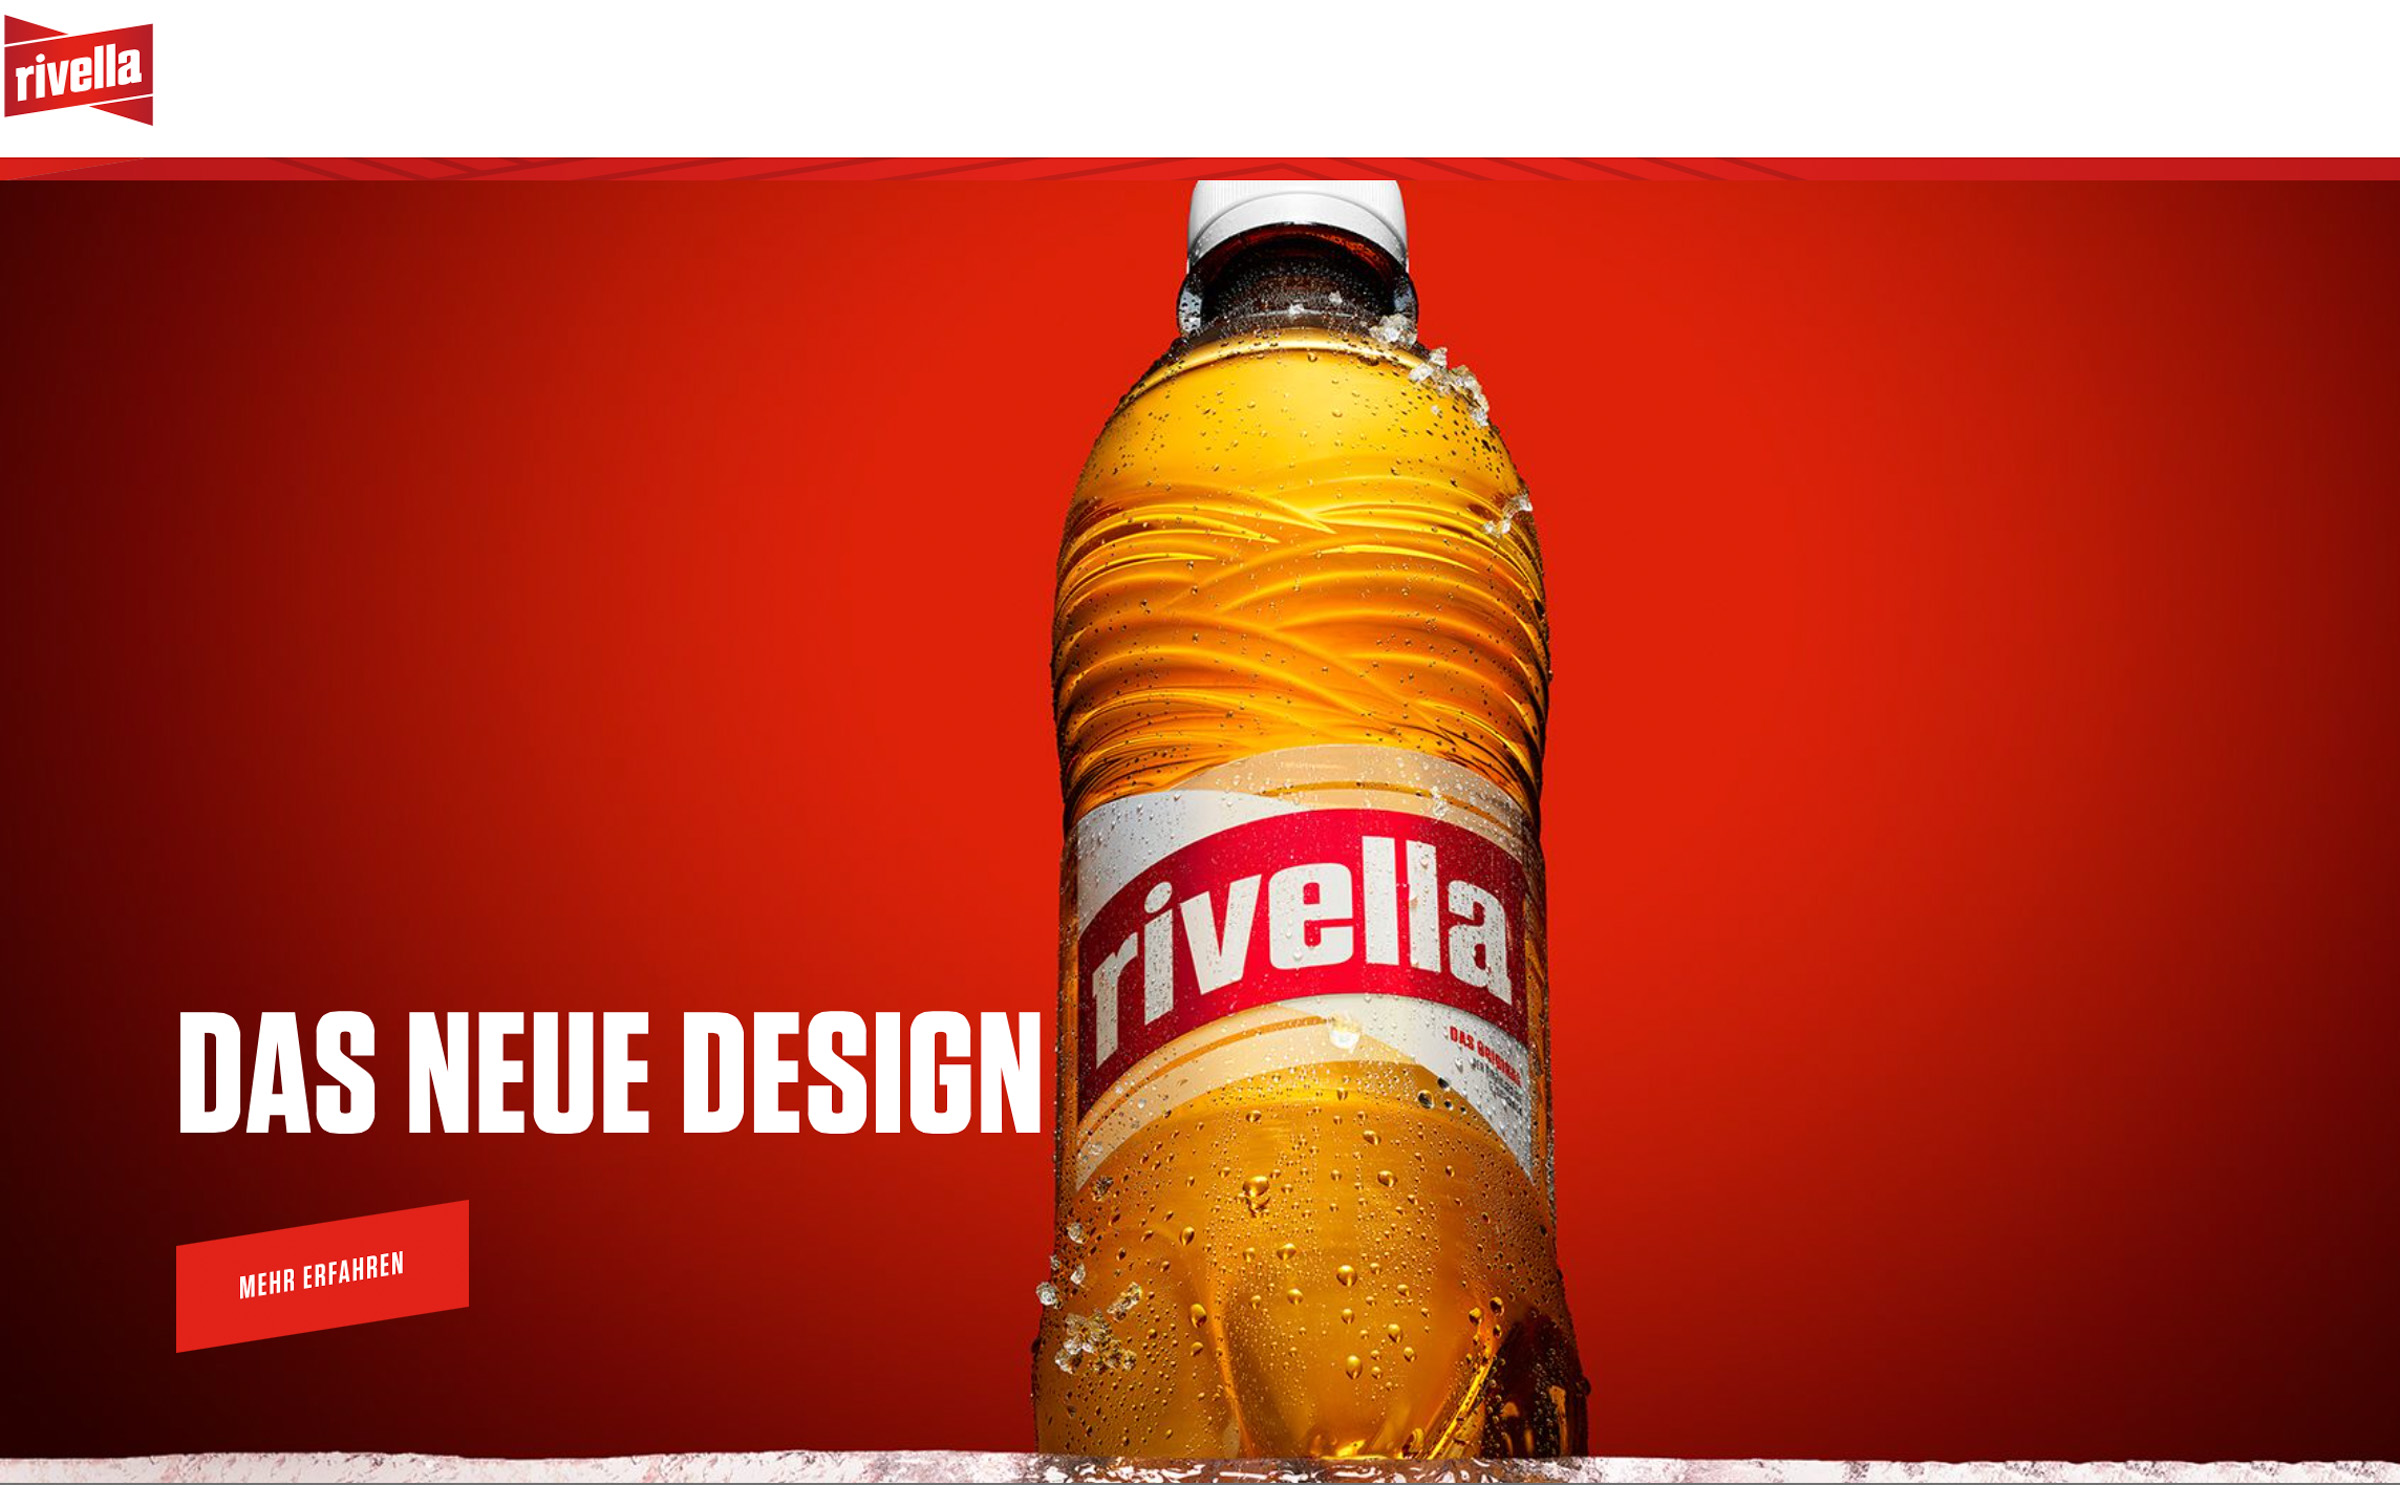 Rivella on ice